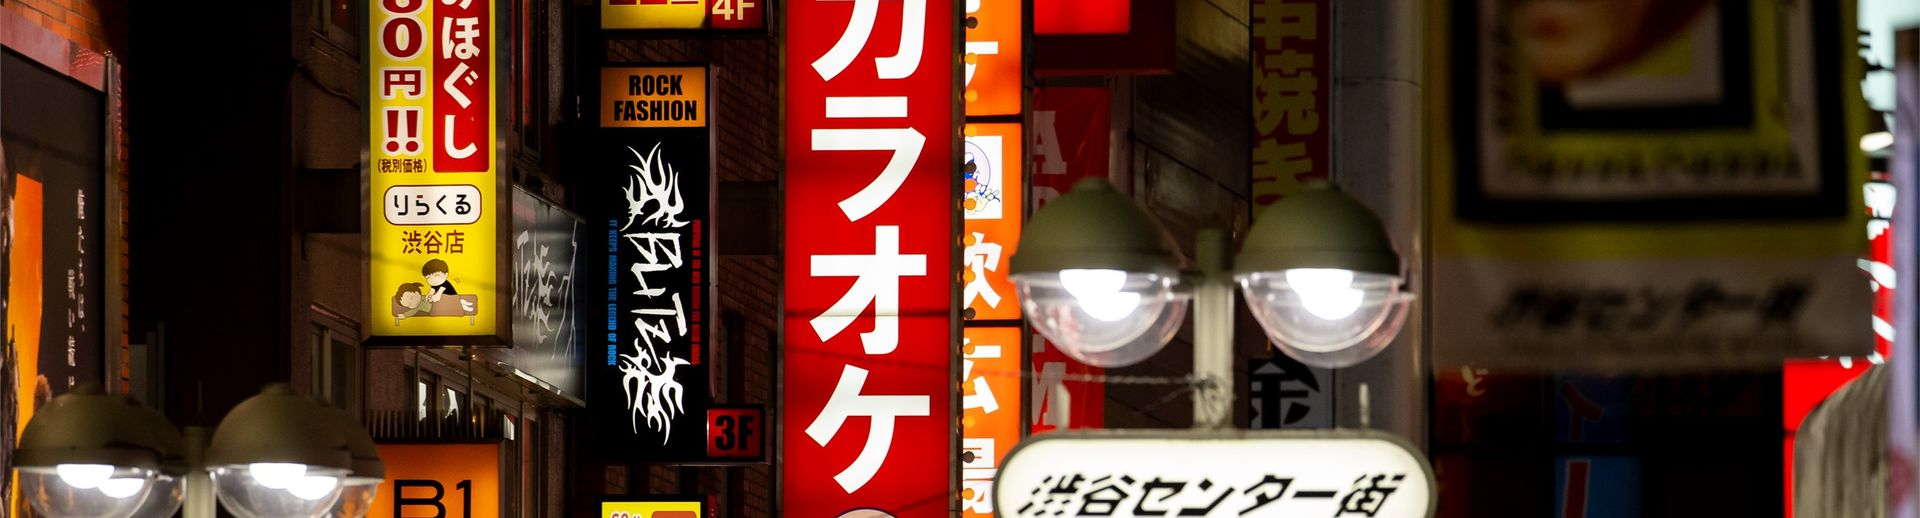 Brightly lit signs in downtown Tokyo at night.